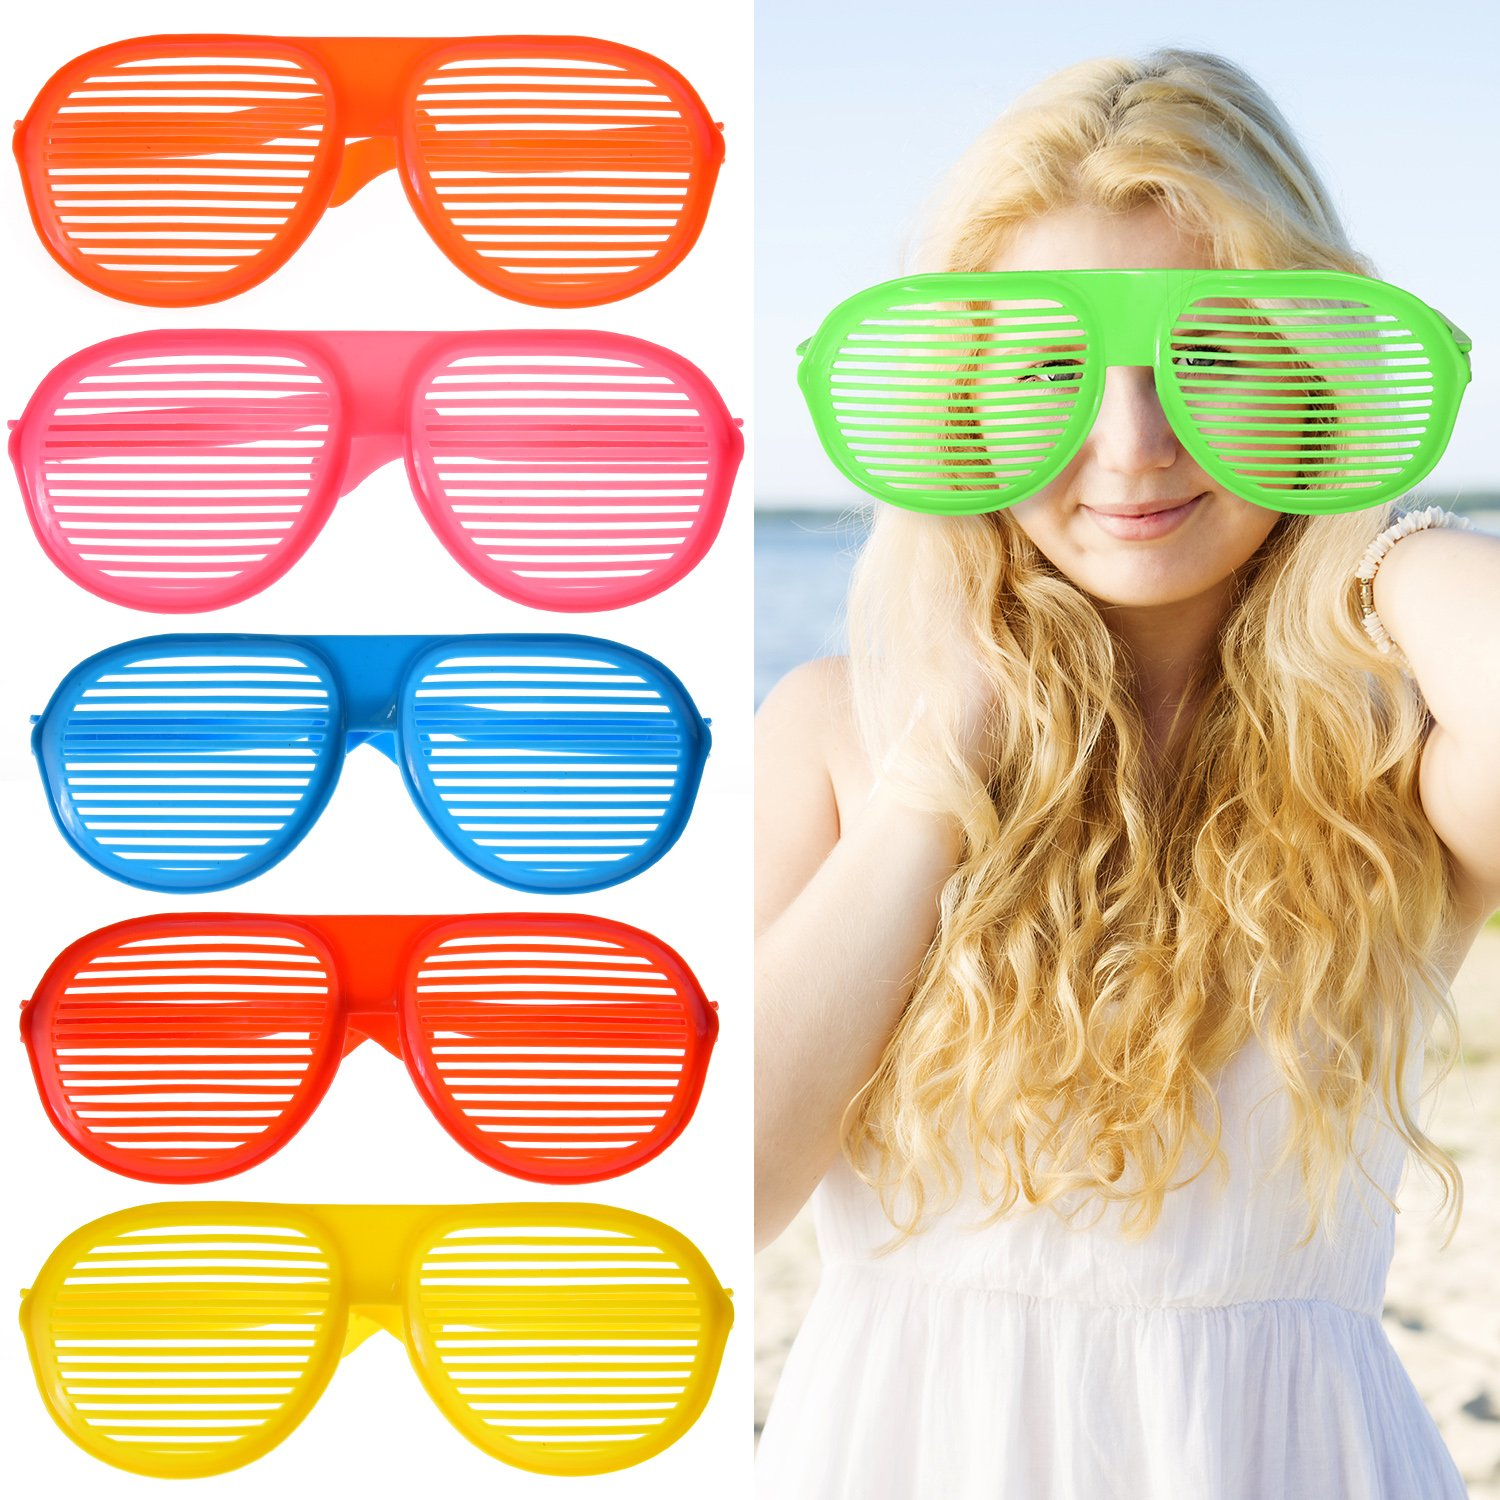 09d856e8e100 Get Quotations · BBTO 6 Pieces Shutter Glasses Party Shades Sunglasses  Jumbo Plastic Glasses for Halloween Christmas Party Cosplay